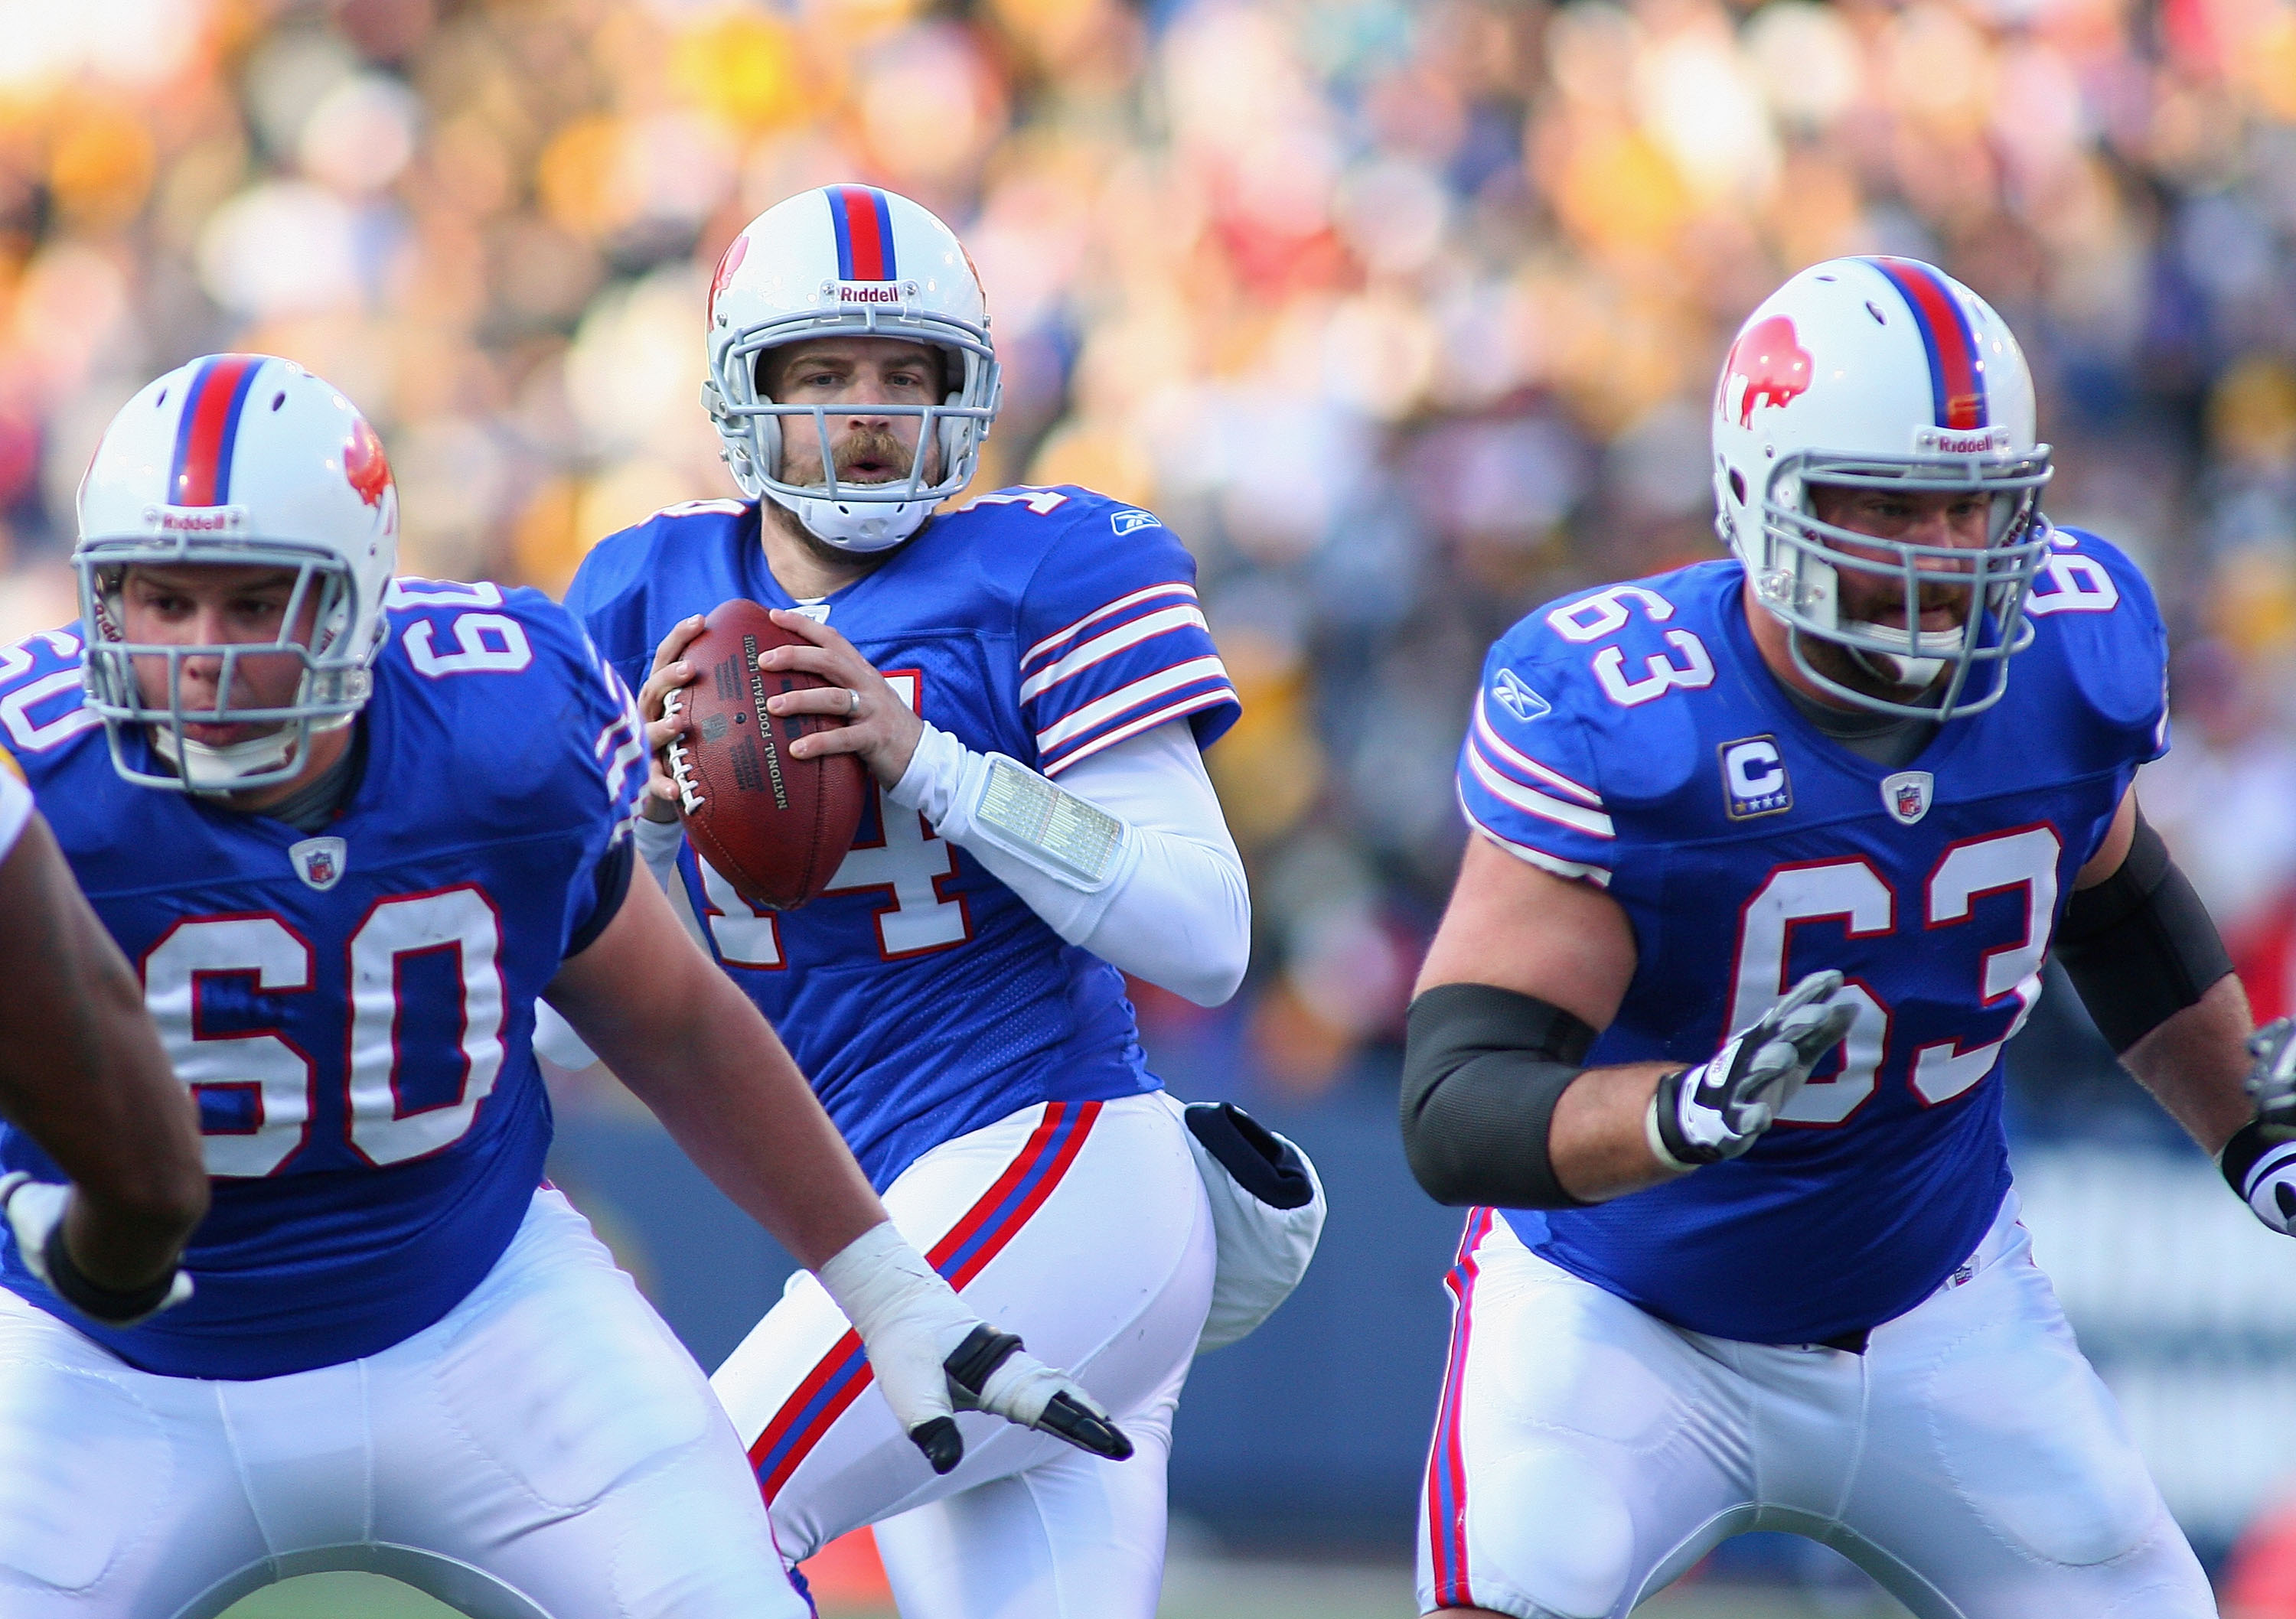 ORCHARD PARK, NY - NOVEMBER 28:  Ryan Fitzpatrick #14  of the Buffalo Bills drops back to throw with protection from Kraig Urbik #60 and Geoff Hangartner #63  against the Pittsburgh Steelers at Ralph Wilson Stadium on November 28, 2010 in Orchard Park, Ne